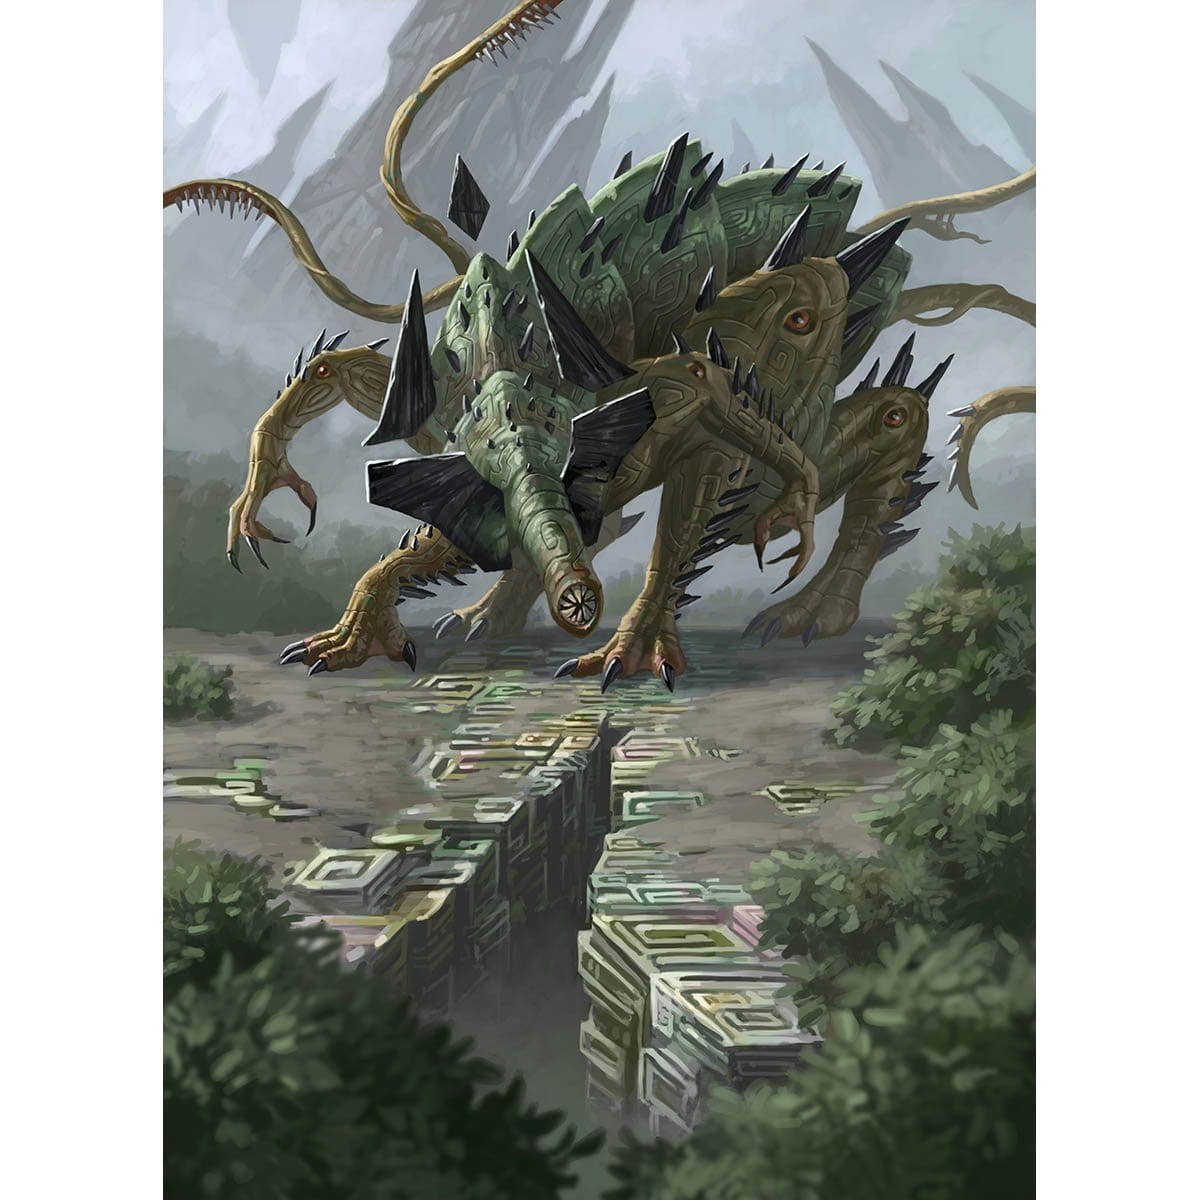 Eldrazi Mimic Print - Print - Original Magic Art - Accessories for Magic the Gathering and other card games